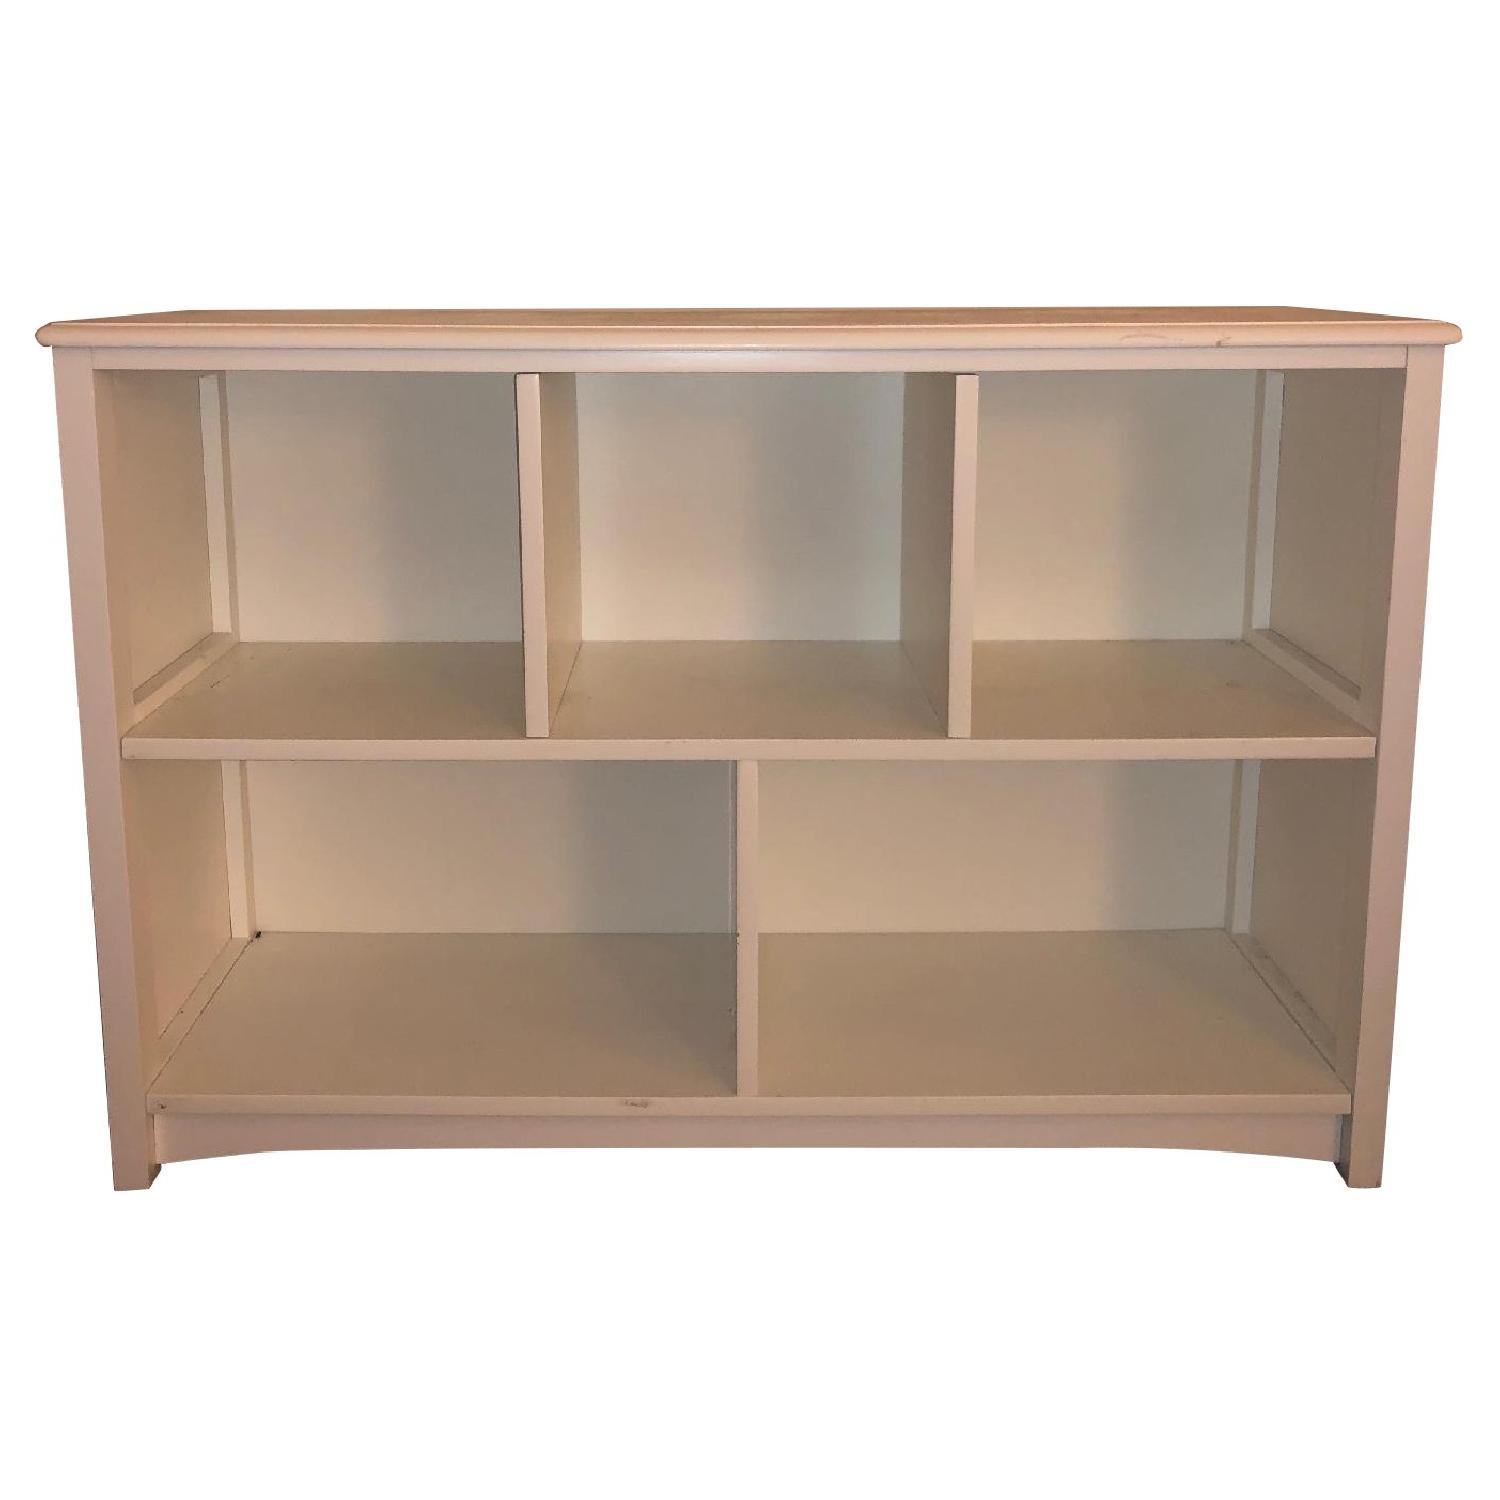 Low Bookcase in Simply White